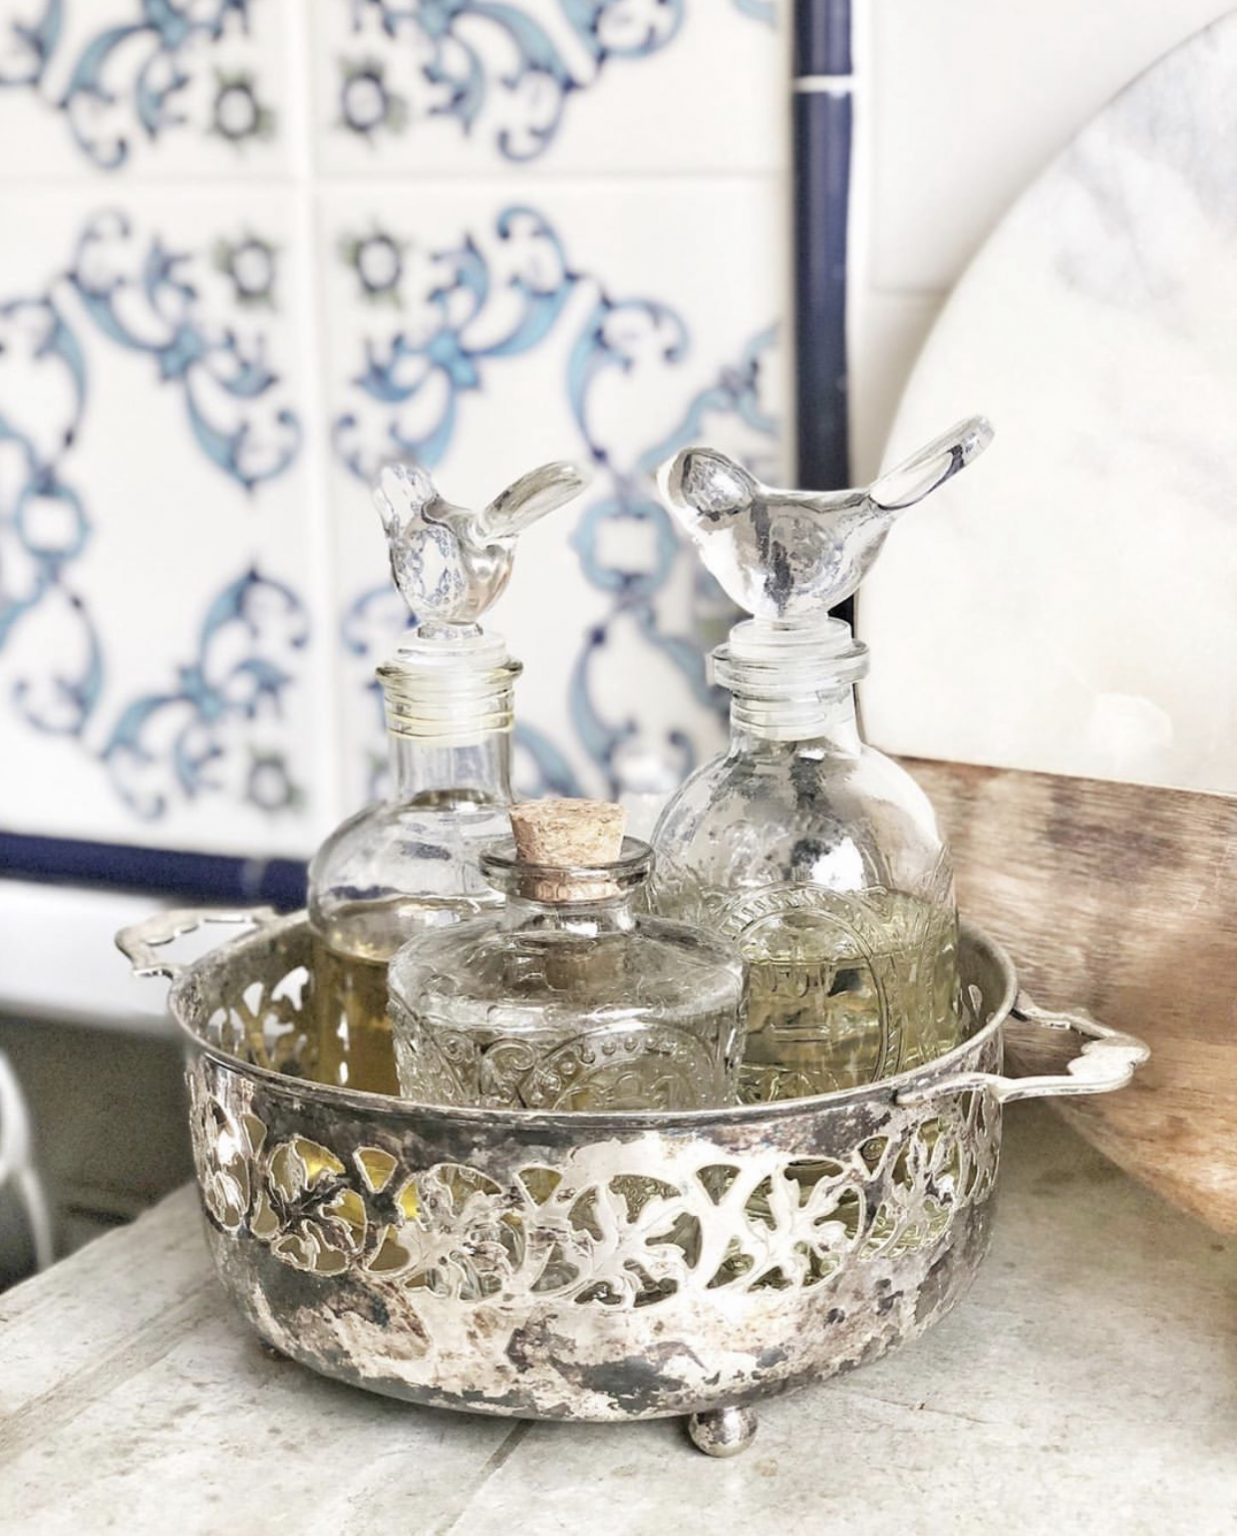 Make antique silver functional for everyday use.